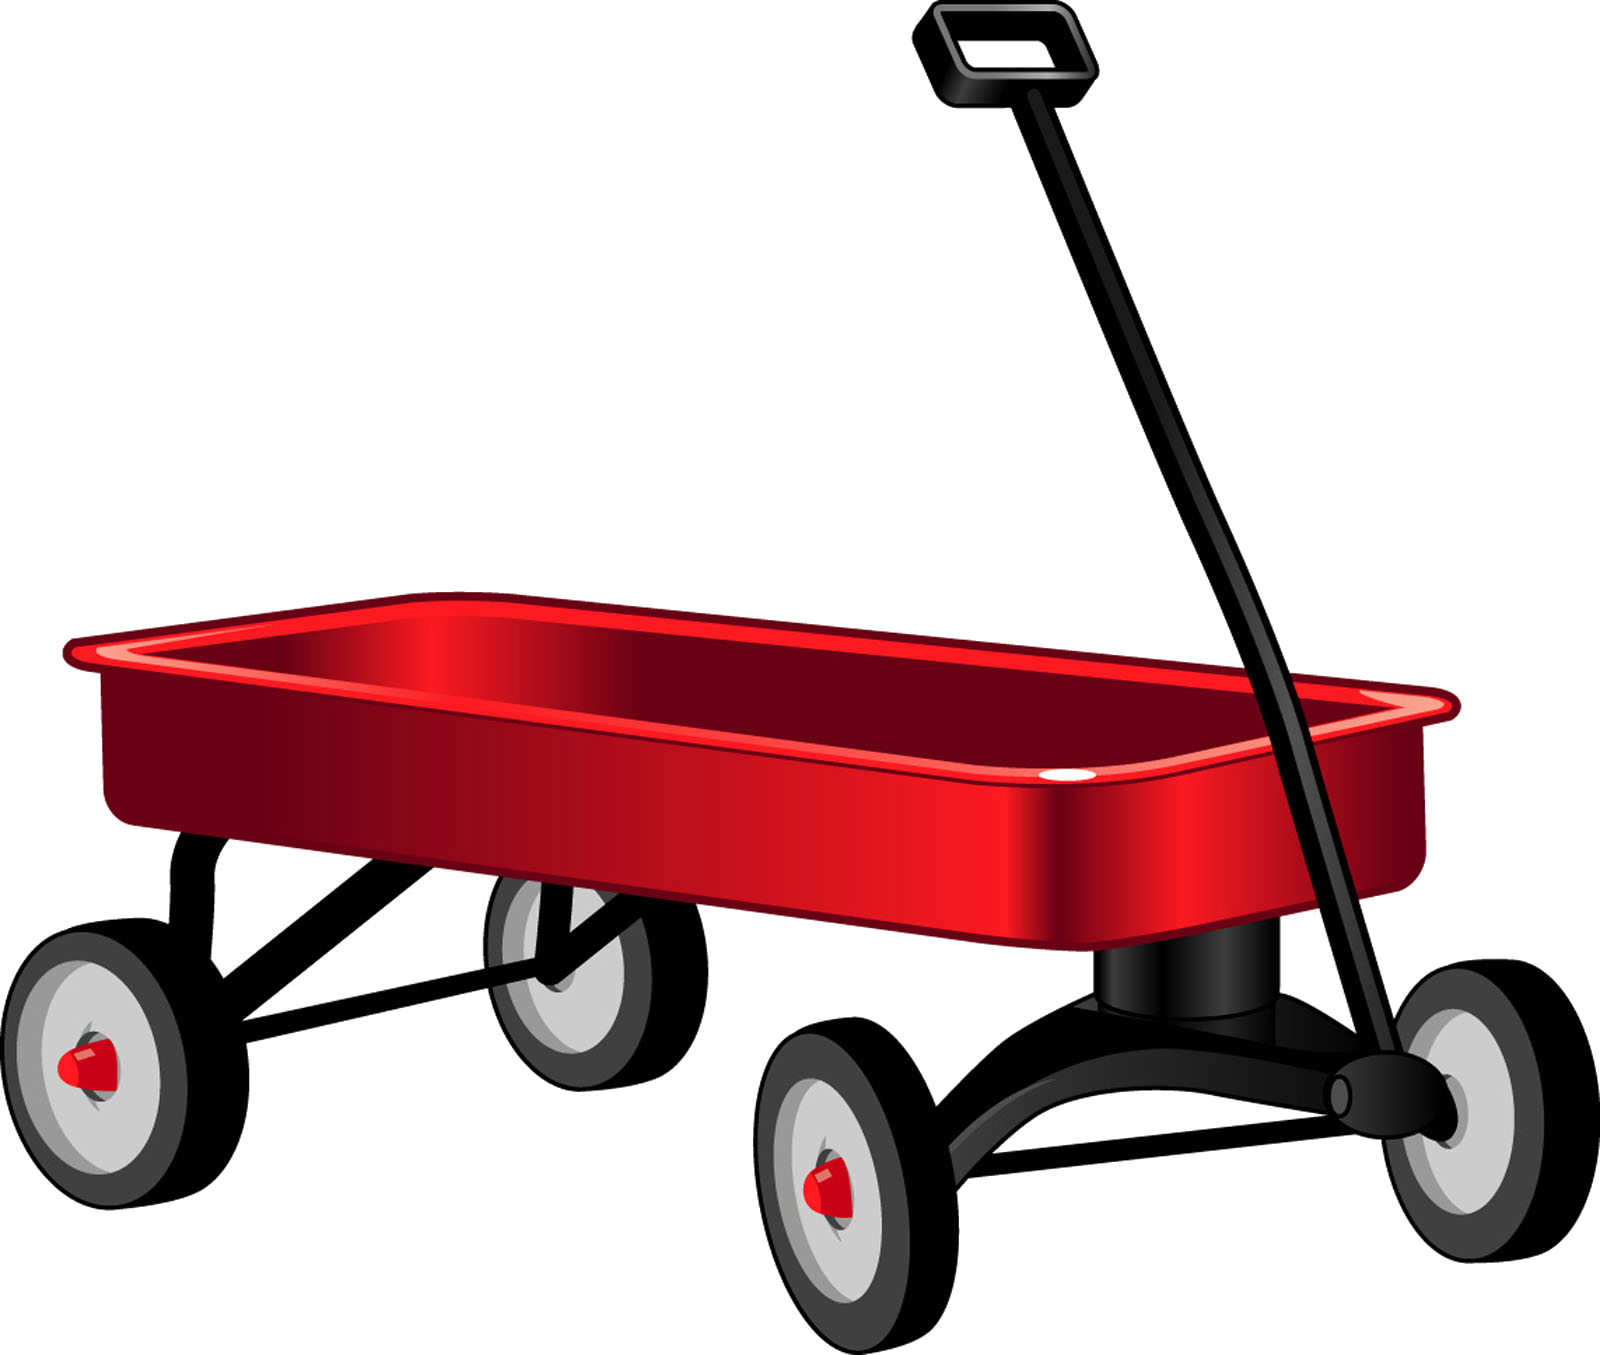 christ child society red wagon luncheon